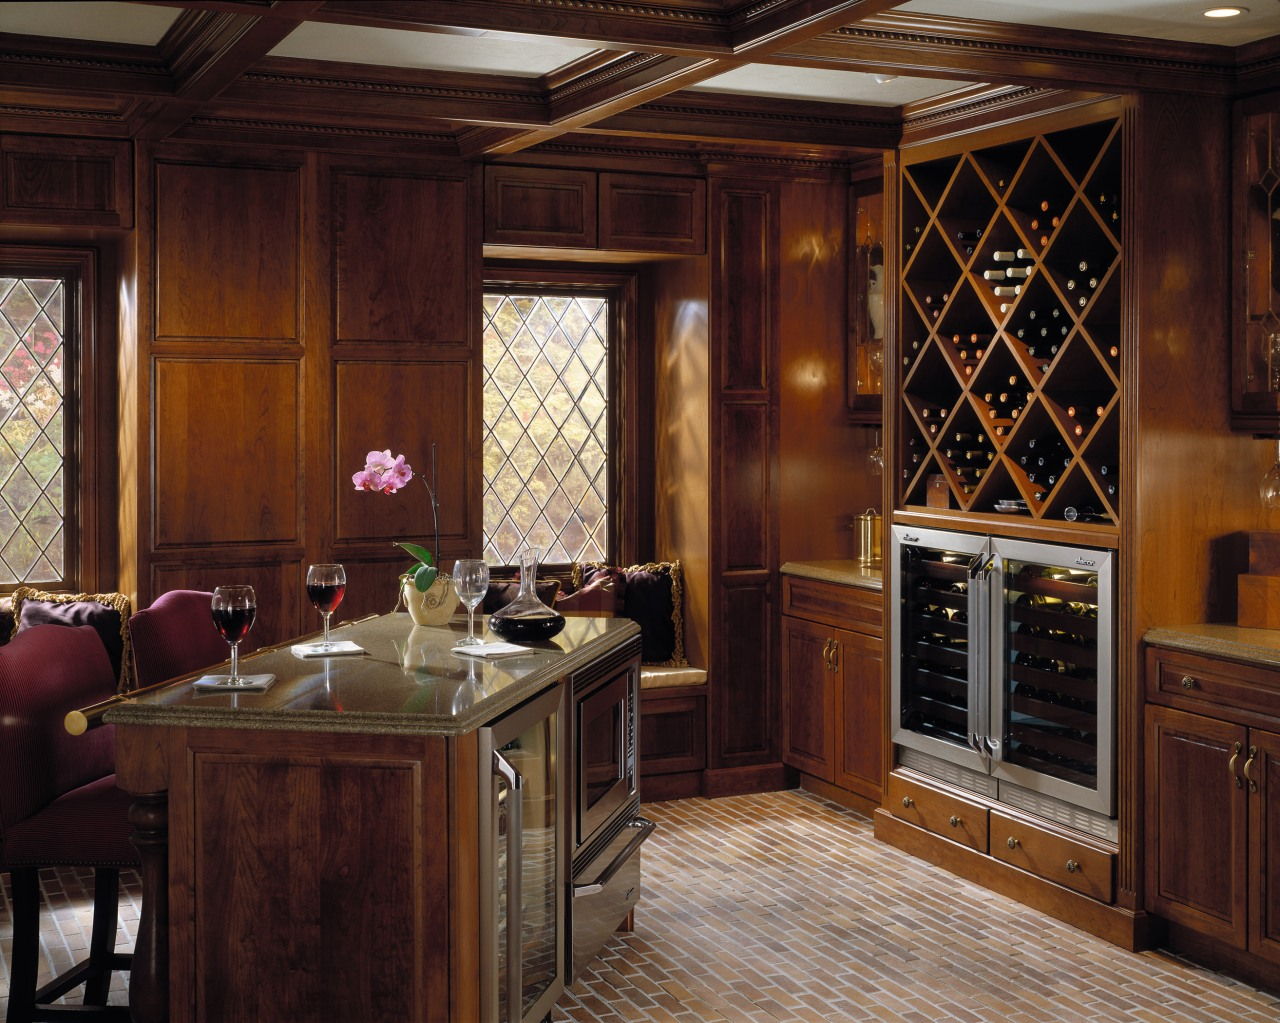 Interior view of dining area cabinetry, countertop, cuisine classique, interior design, kitchen, room, window, wood, red, brown